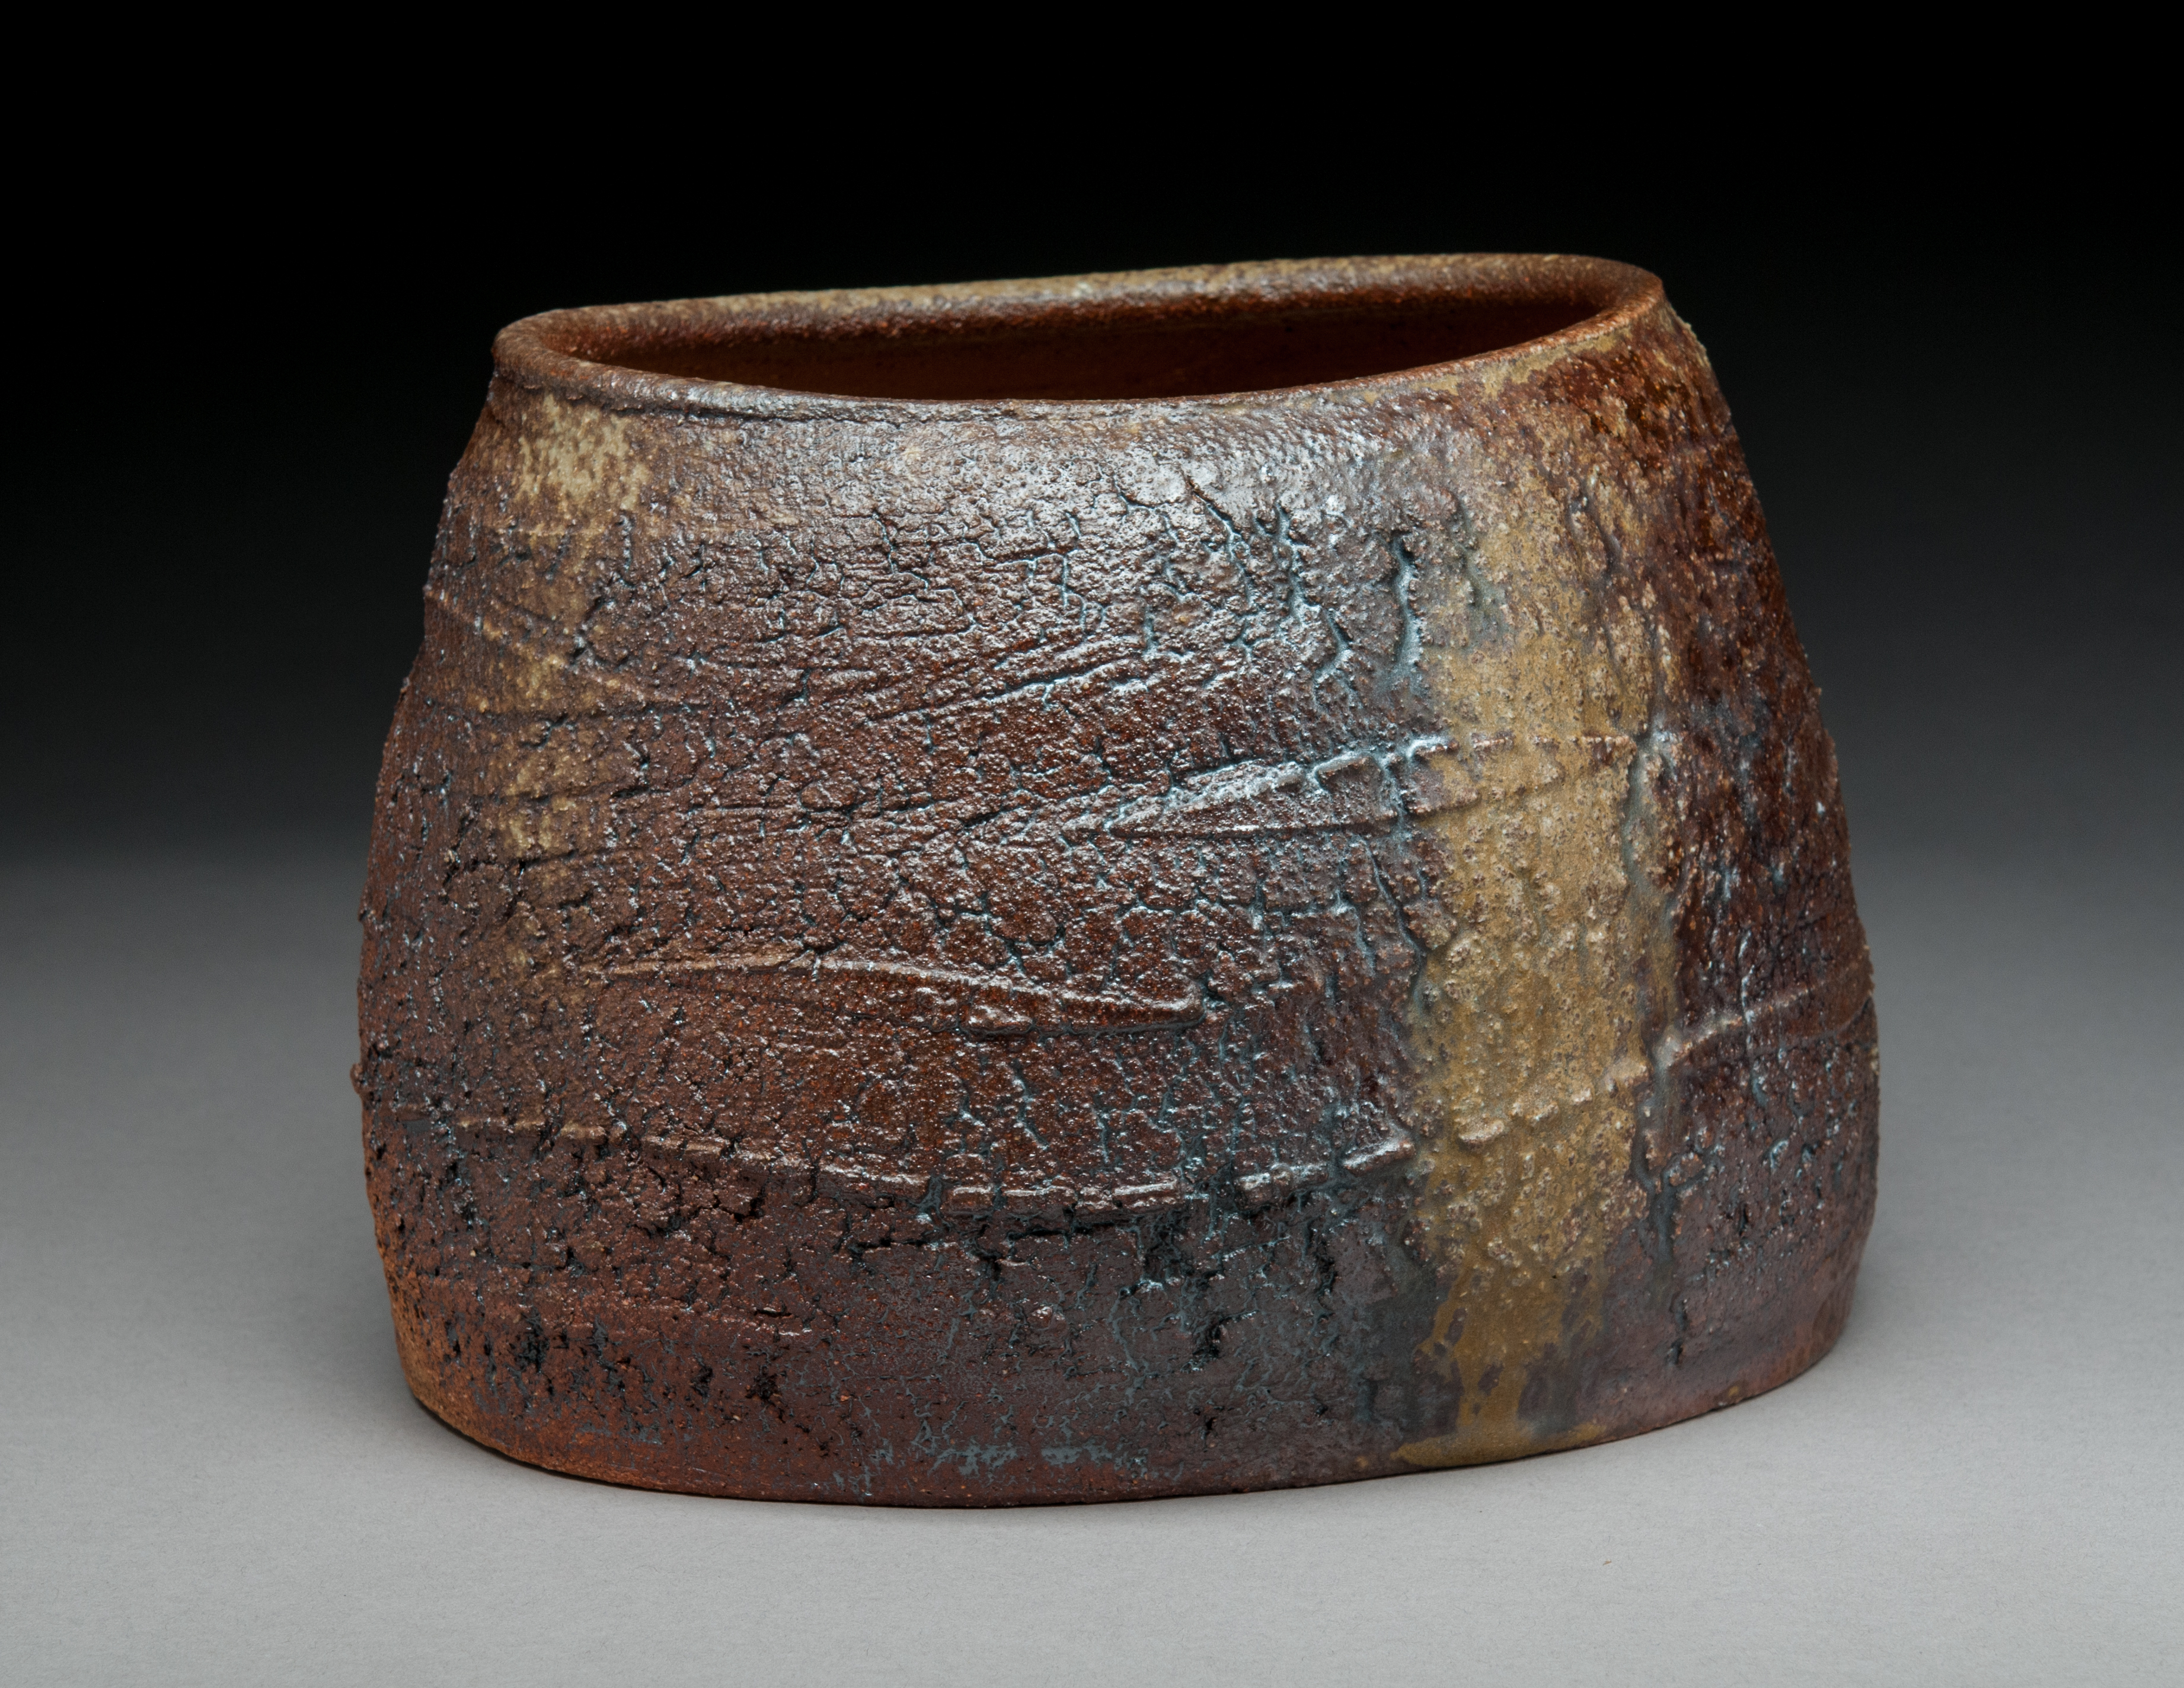 edited_large-Cary Joseph Pottery-4815.jpg